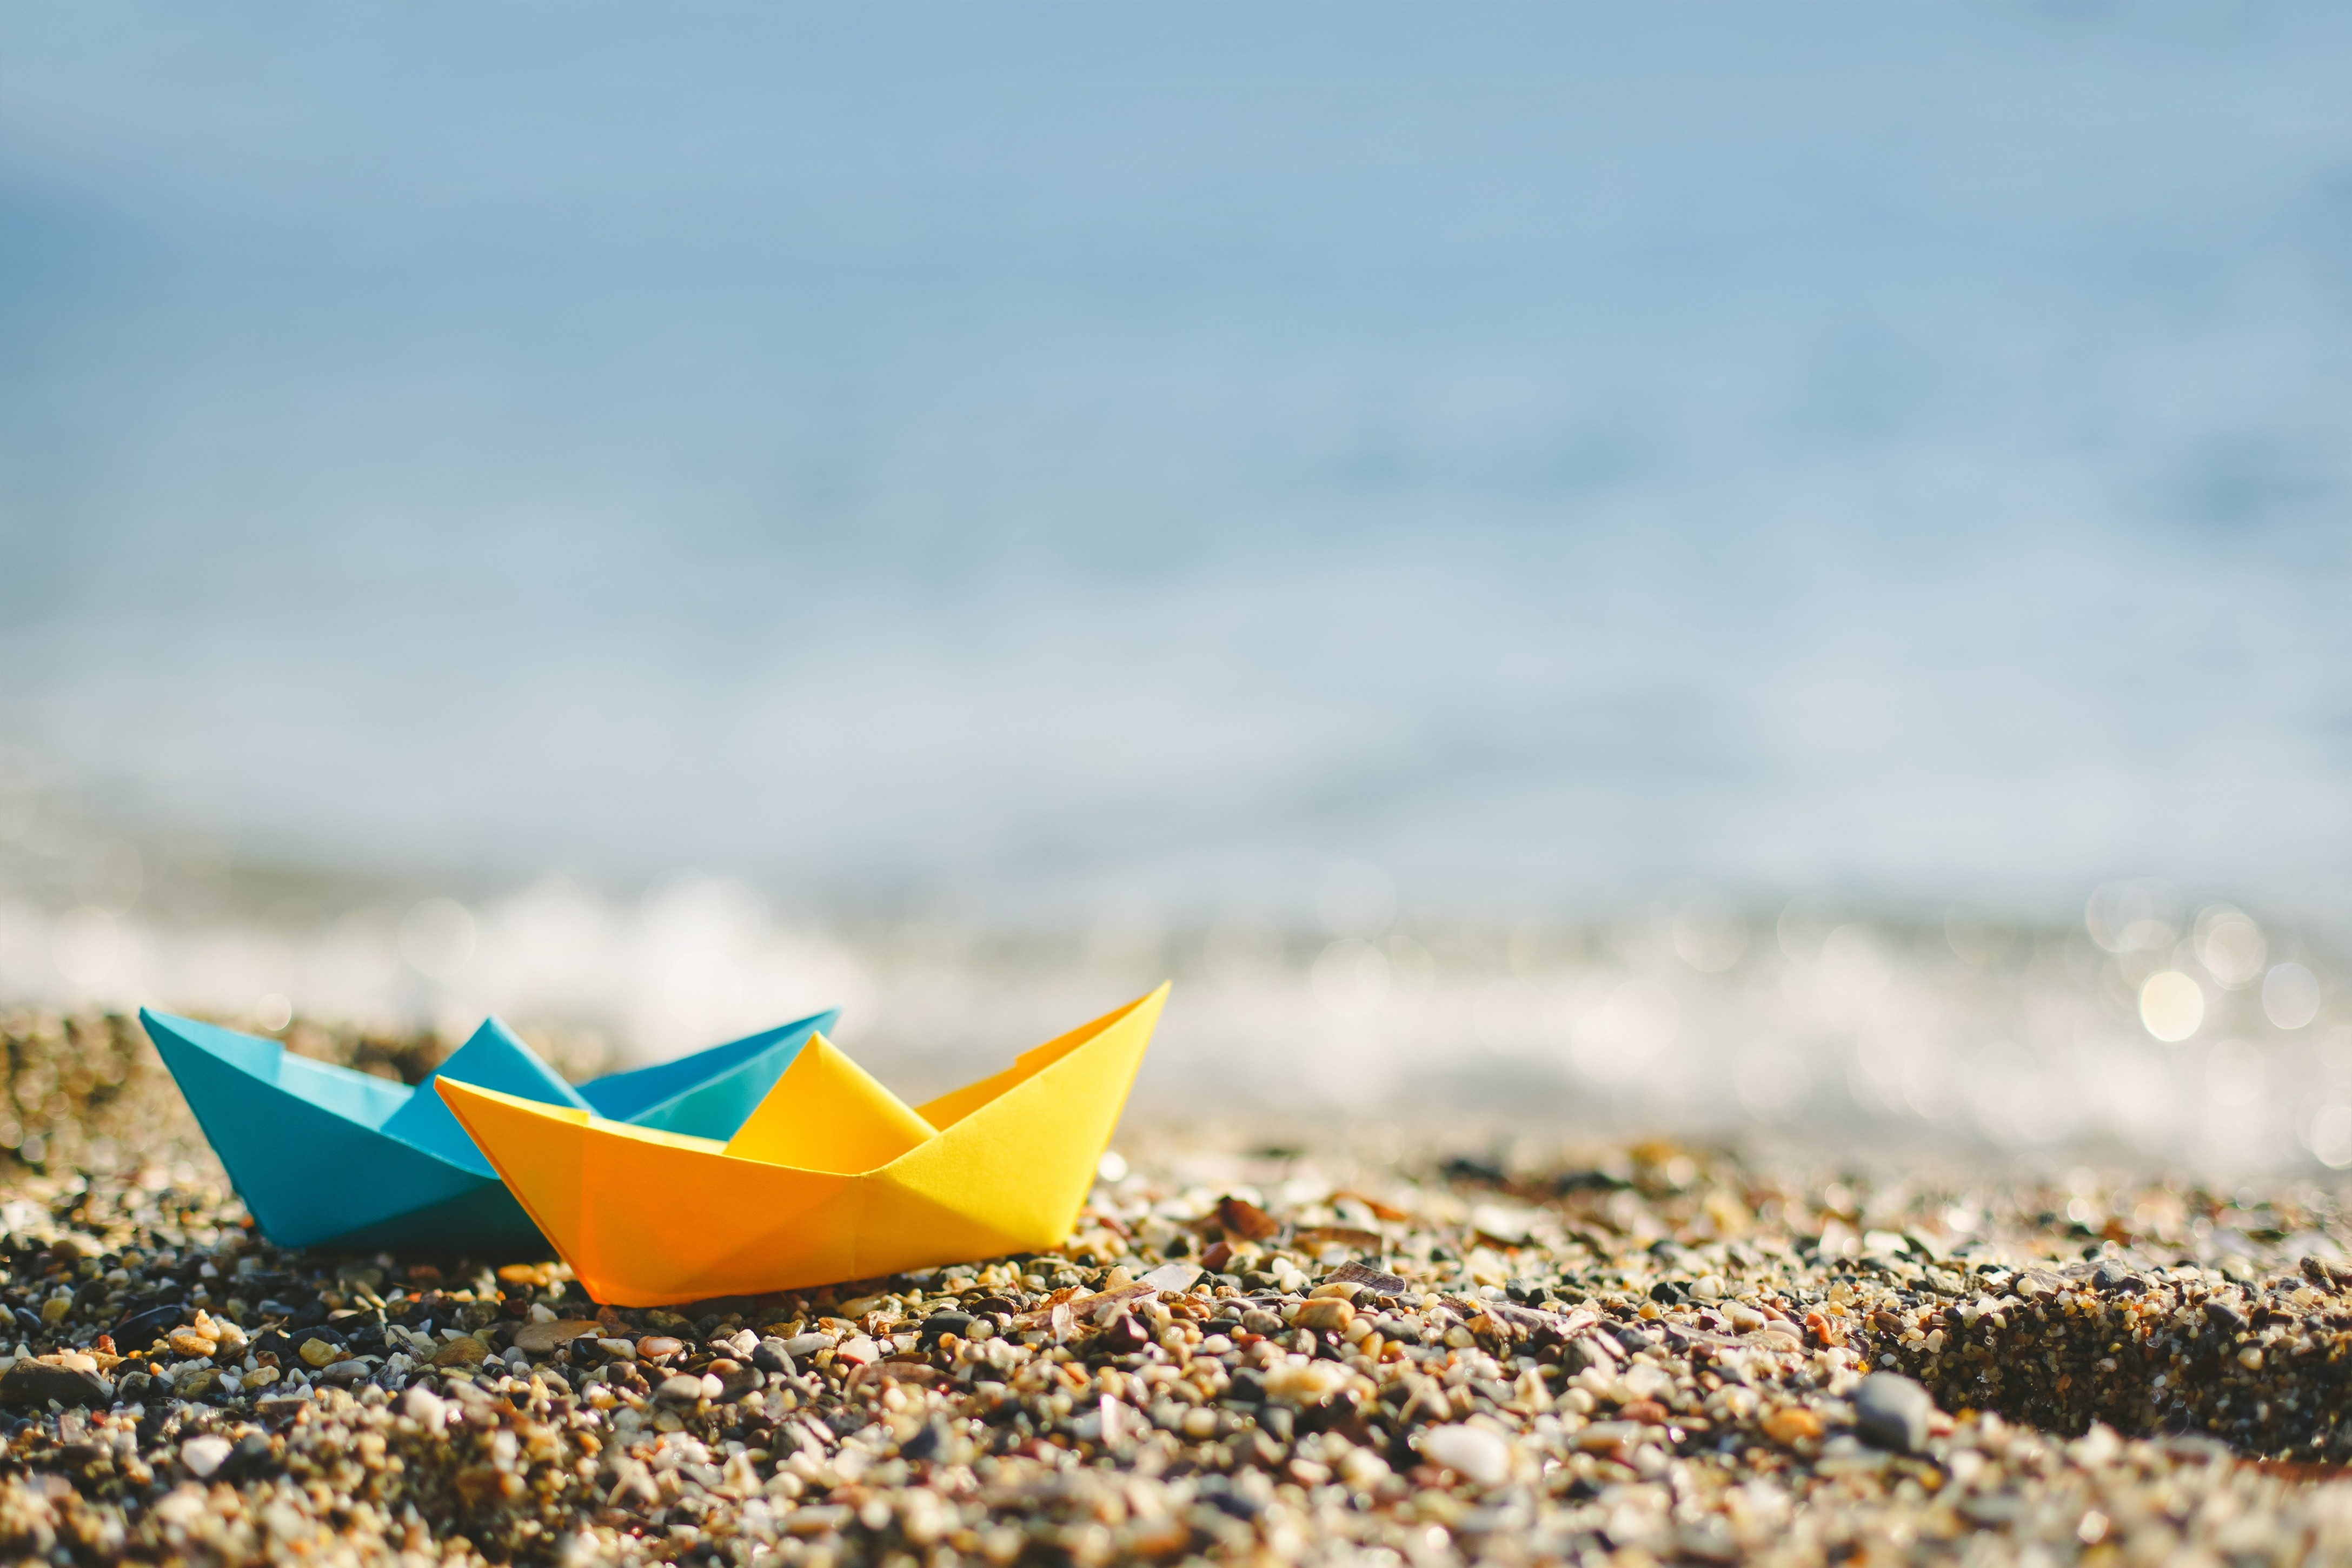 Paper-boat-ready-to-go-on-the-ocean-HD-summer-All-kinds-of-miscellaneous-do-wallpaper-wpc5807931